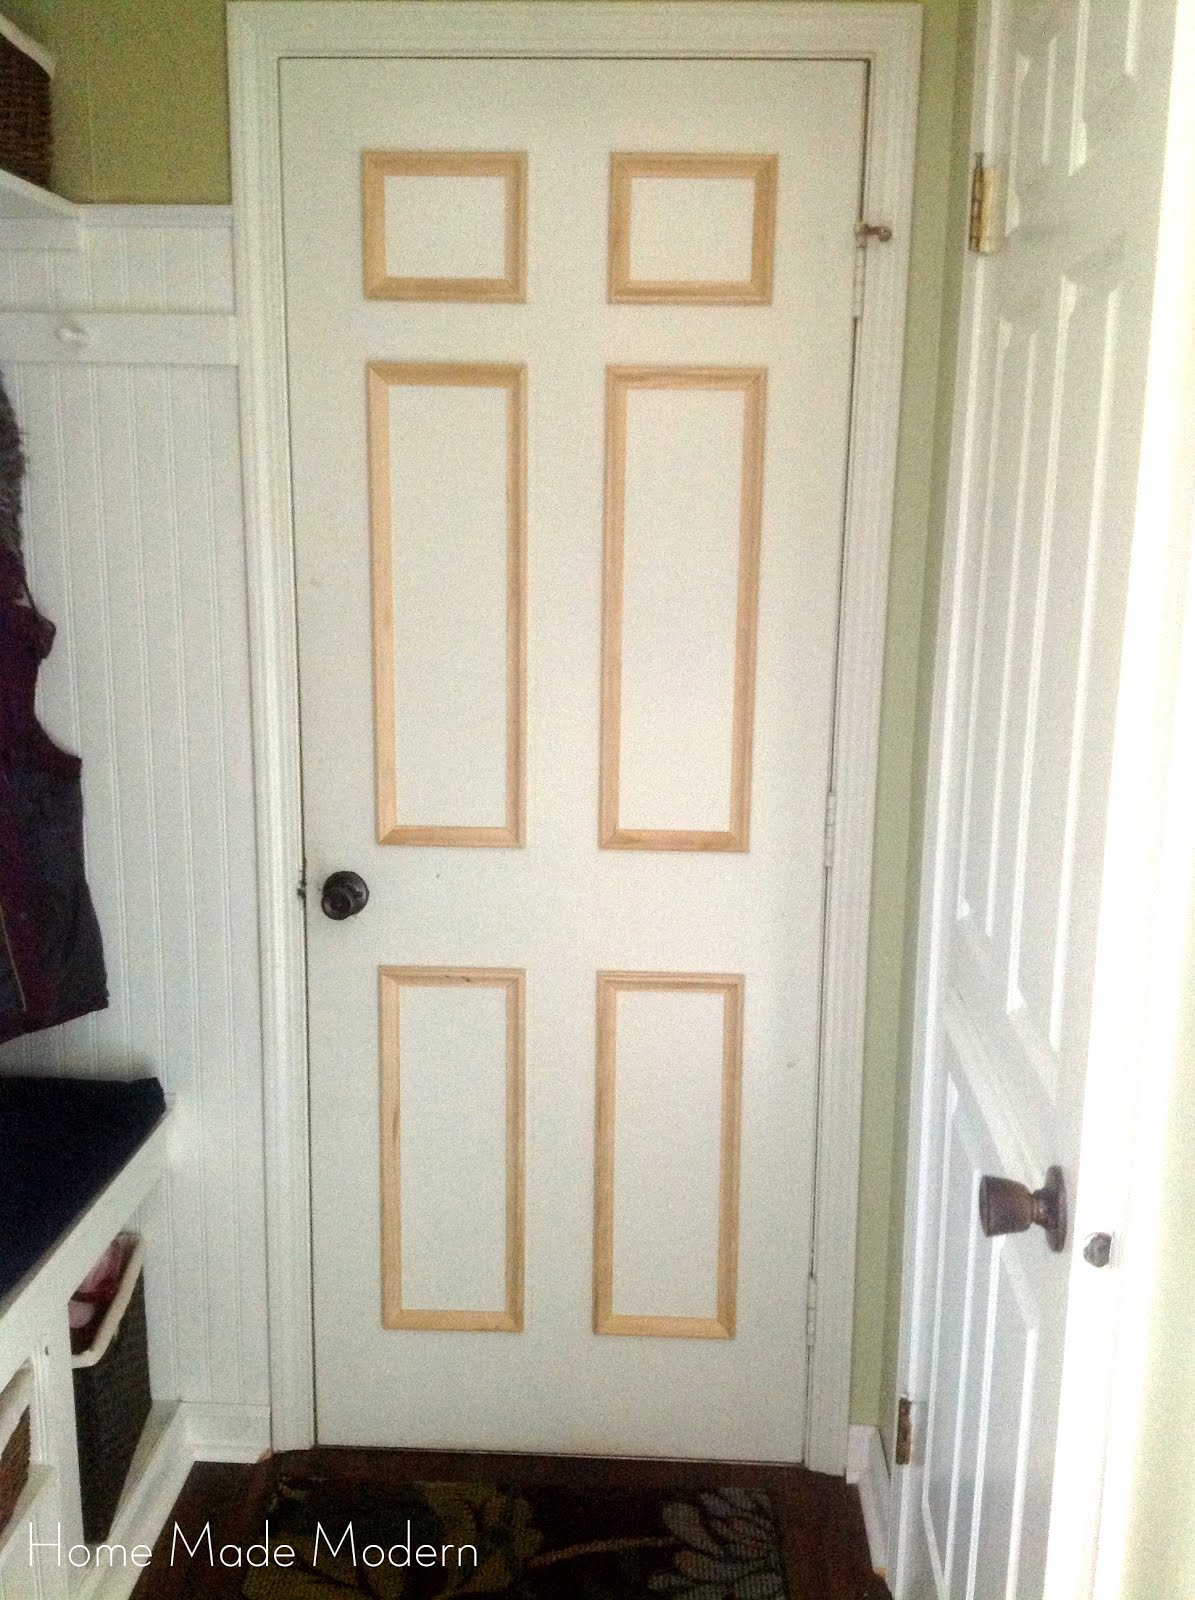 flat to traditional raised panel door - Home Made Modern & Remodelaholic | 40+ Ways to Update Flat Doors and Bifold Doors pezcame.com